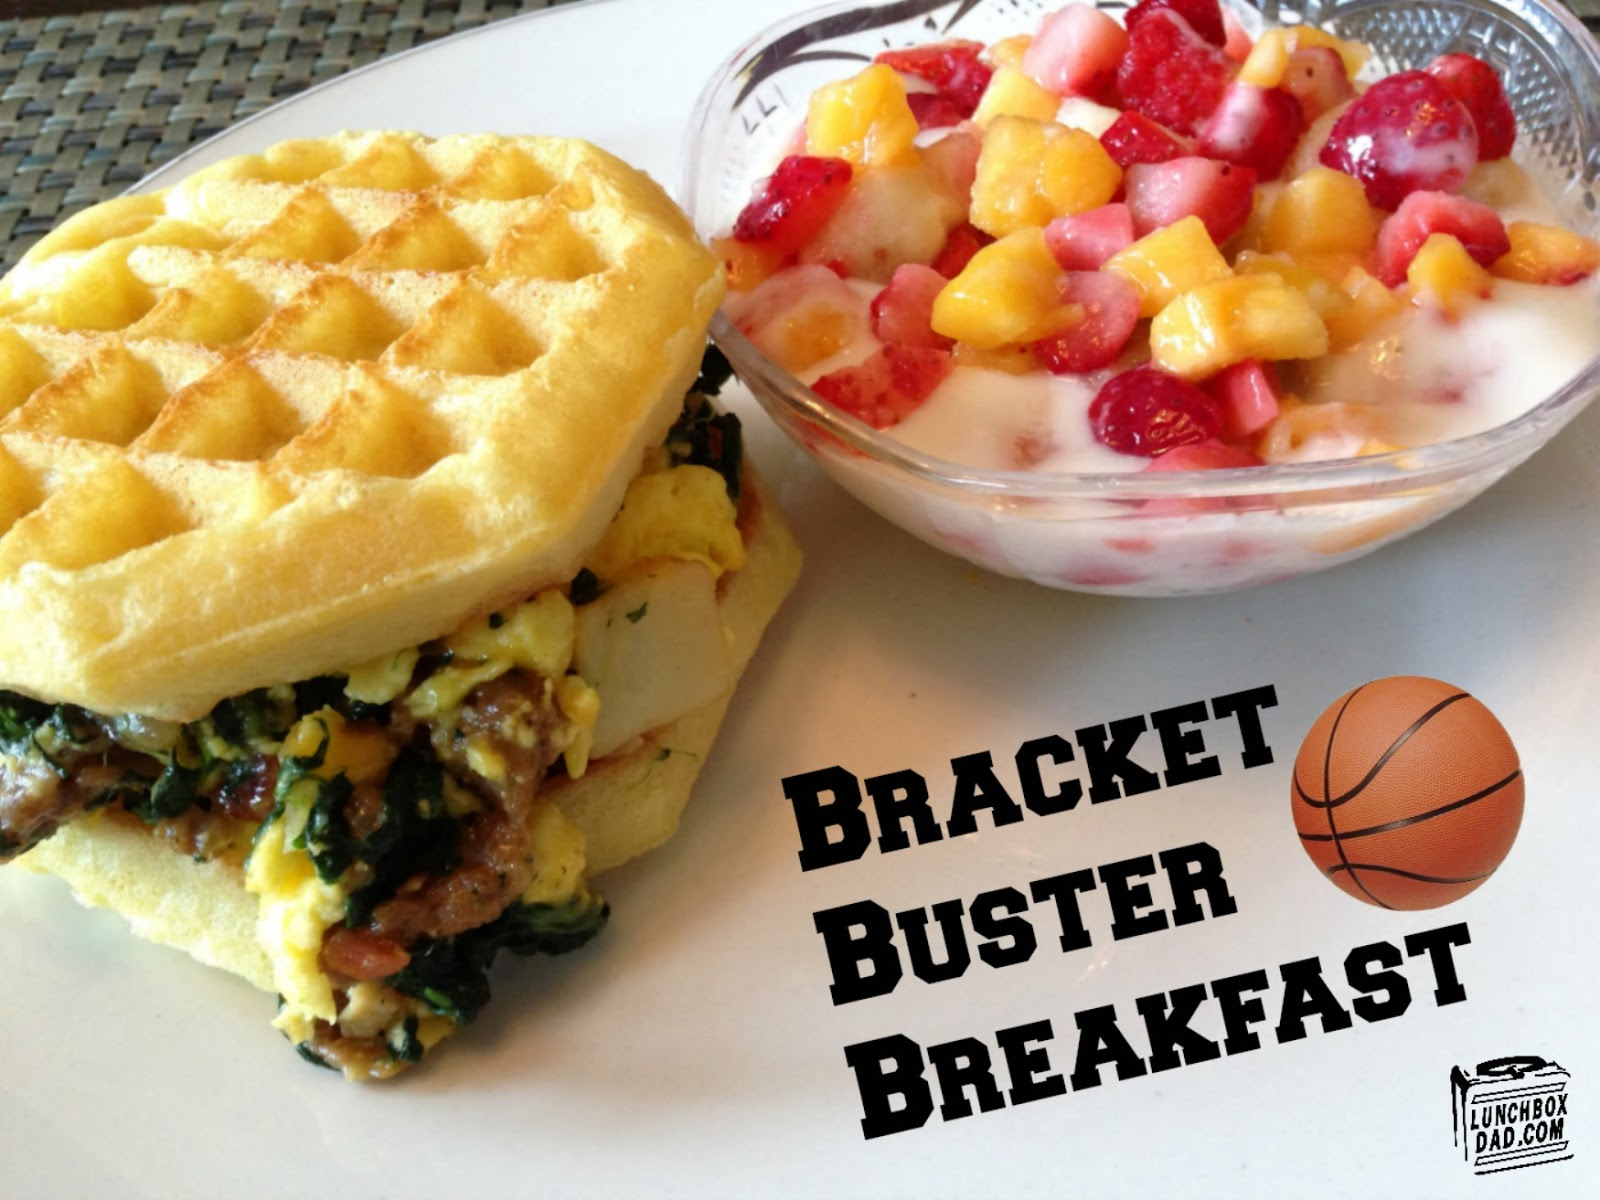 Bracket Buster Breakfast #FrozenChefMadness